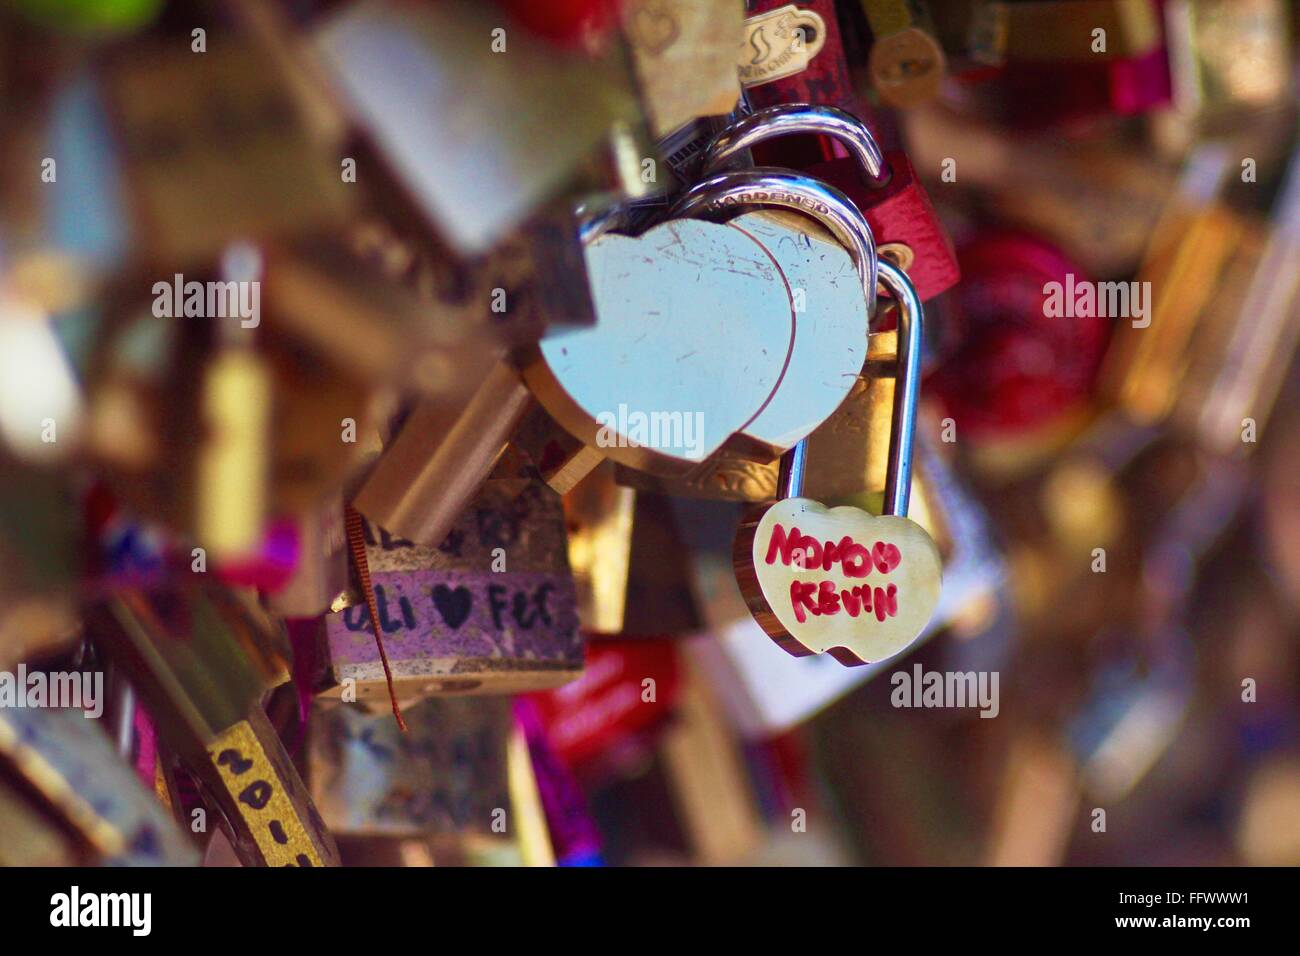 Close-Up Of Love Locks - Stock Image